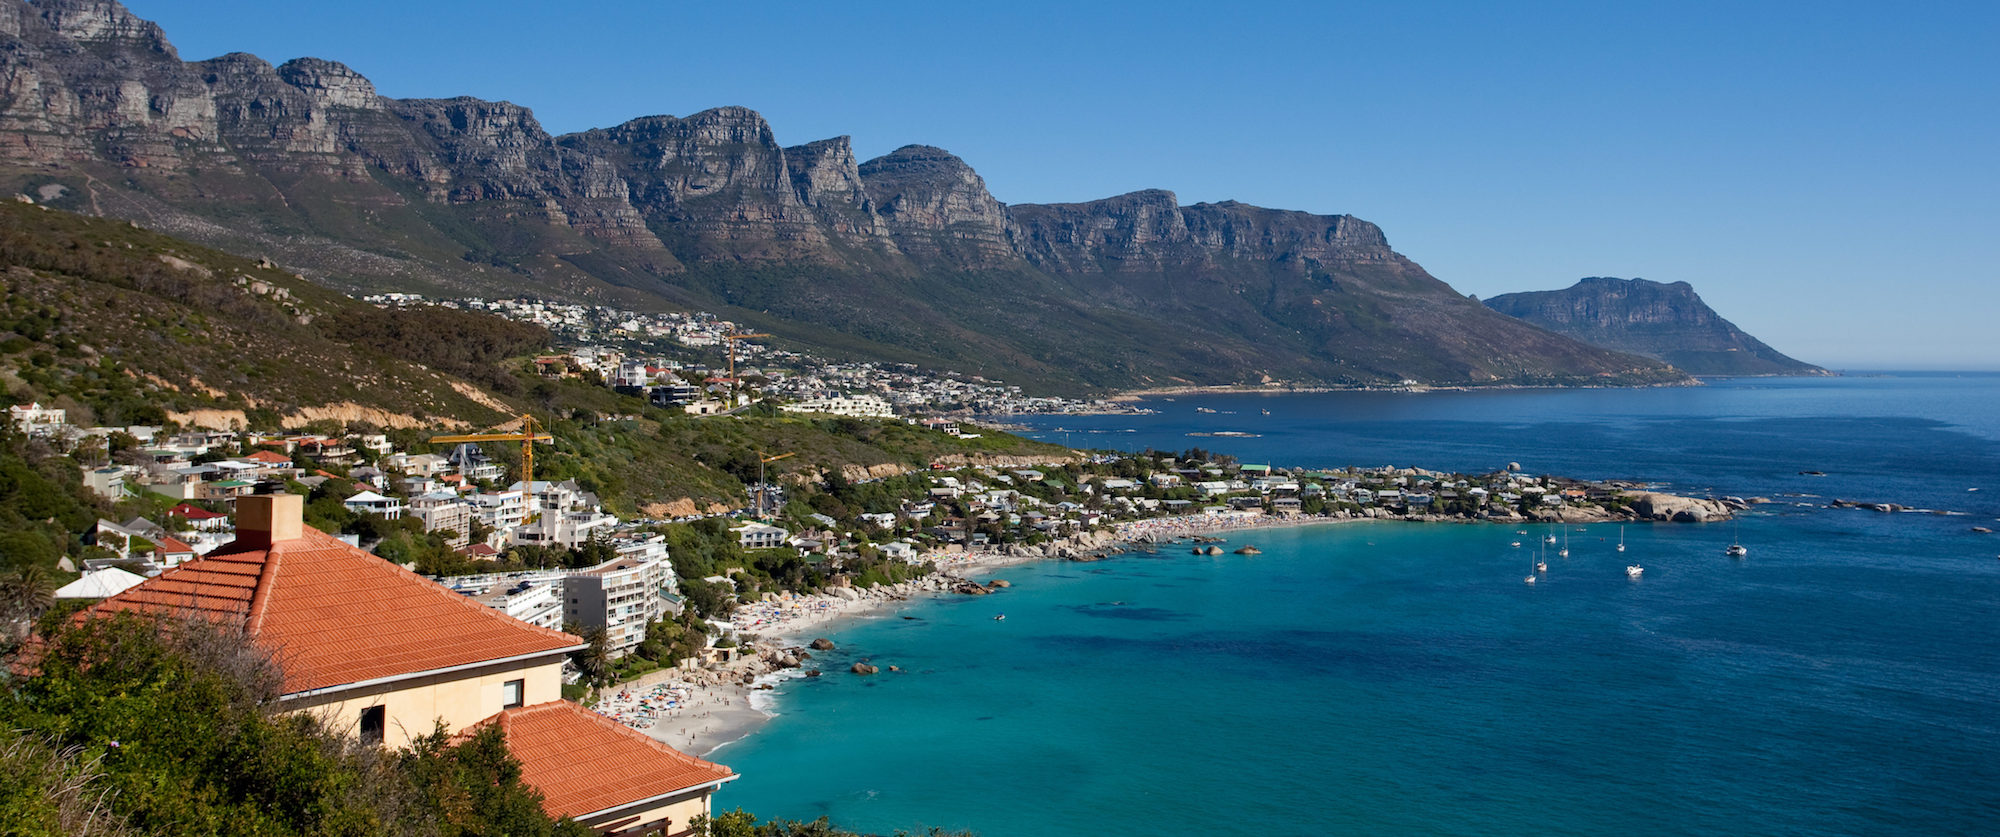 South Africa Safari Package - City and Safari - Cape Town